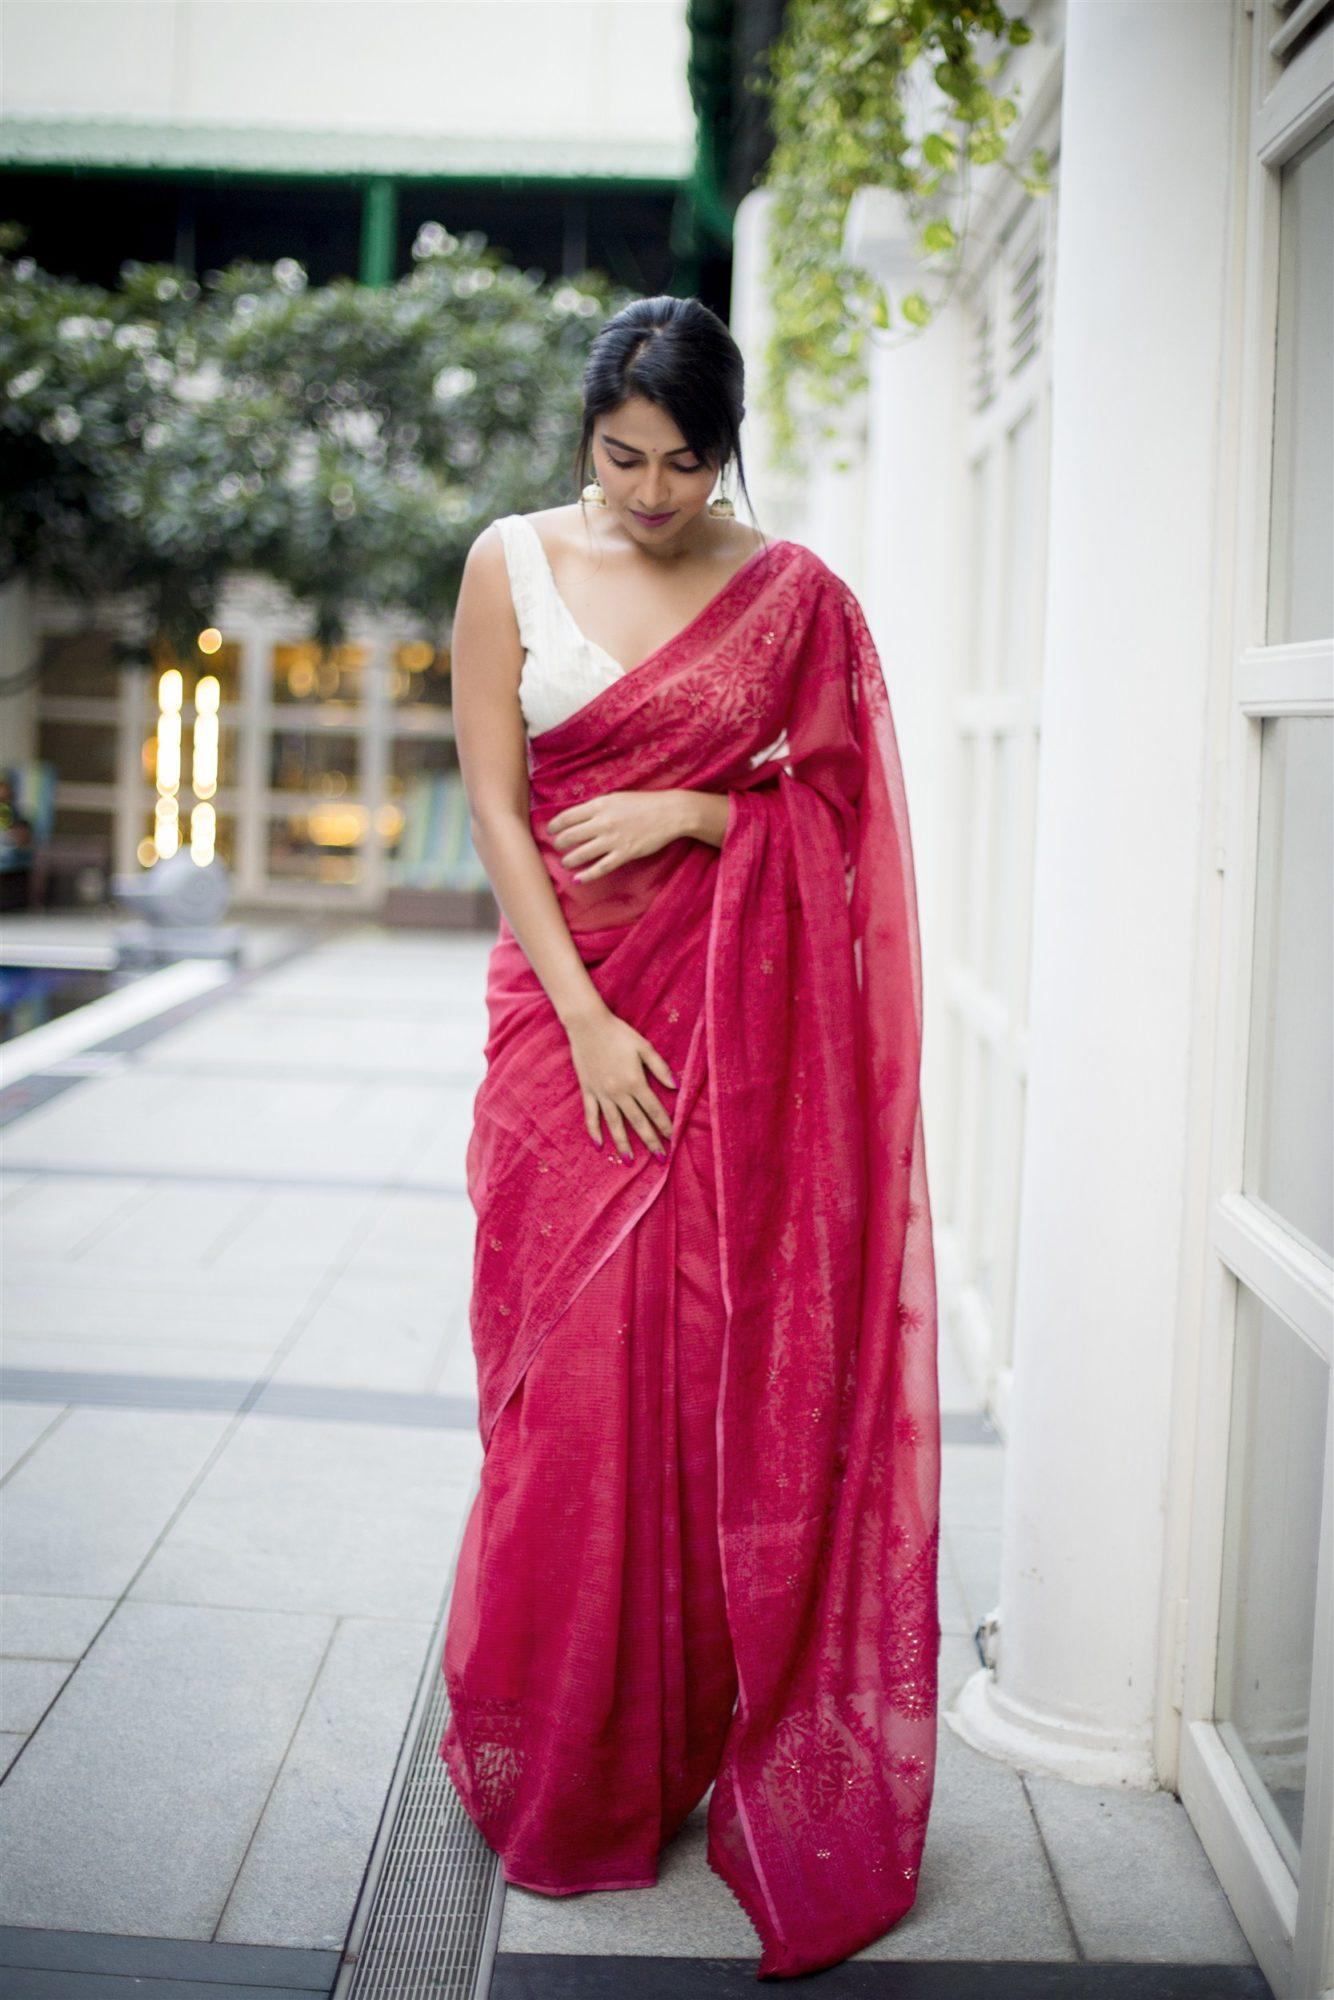 Amala Paul Sex Images amala paul sexy photoshoot in pink saree, going viral on